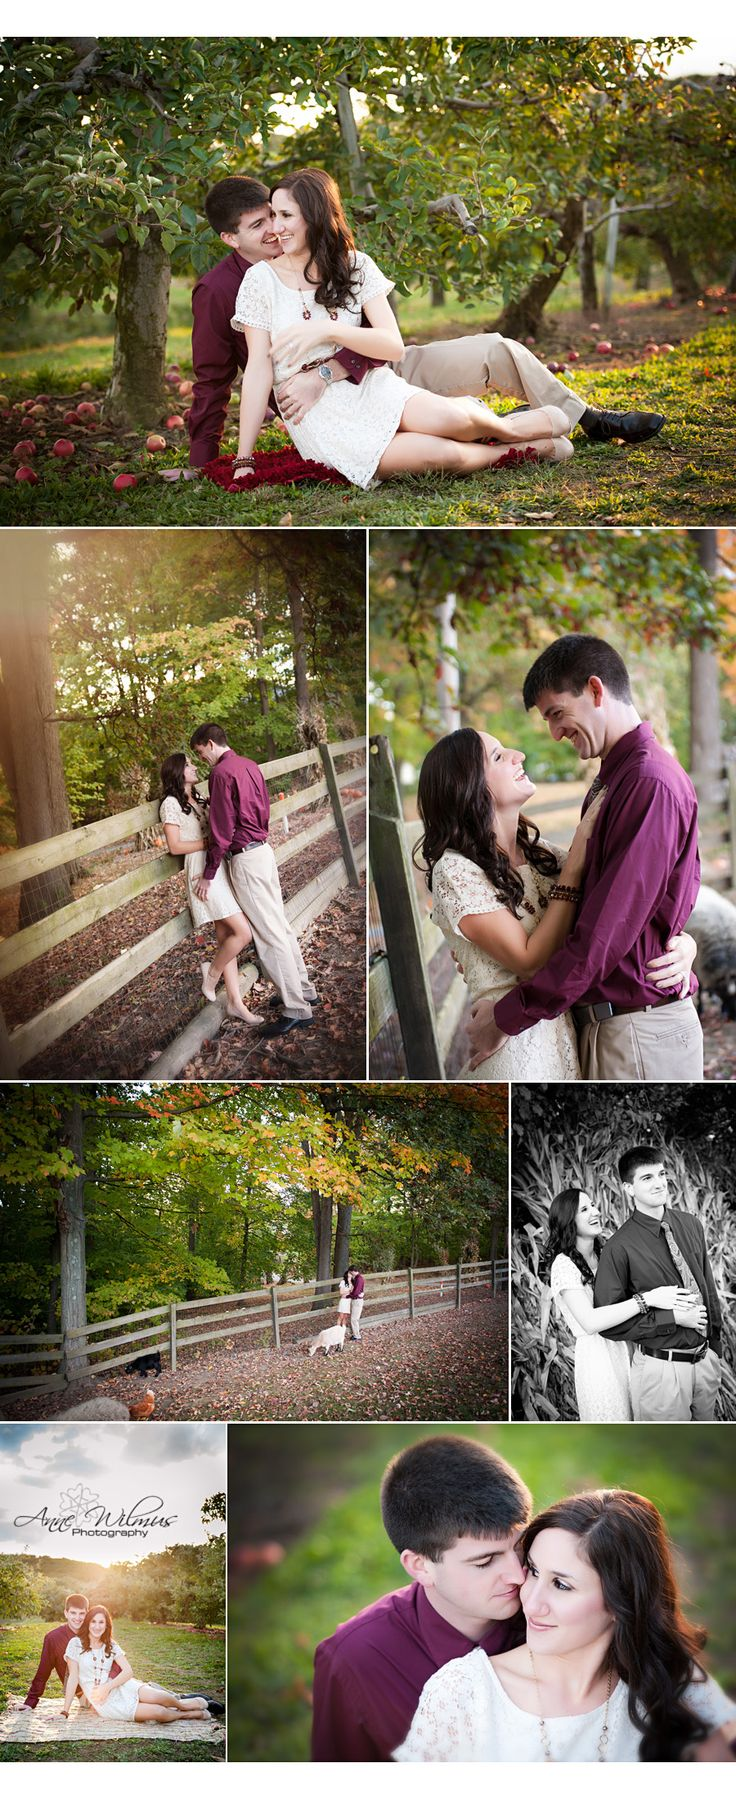 Our engagement shoot. AnneWilmusPhotography. Fall, autumn, apple orchard, simmons farm, Pittsburgh engagement photographer